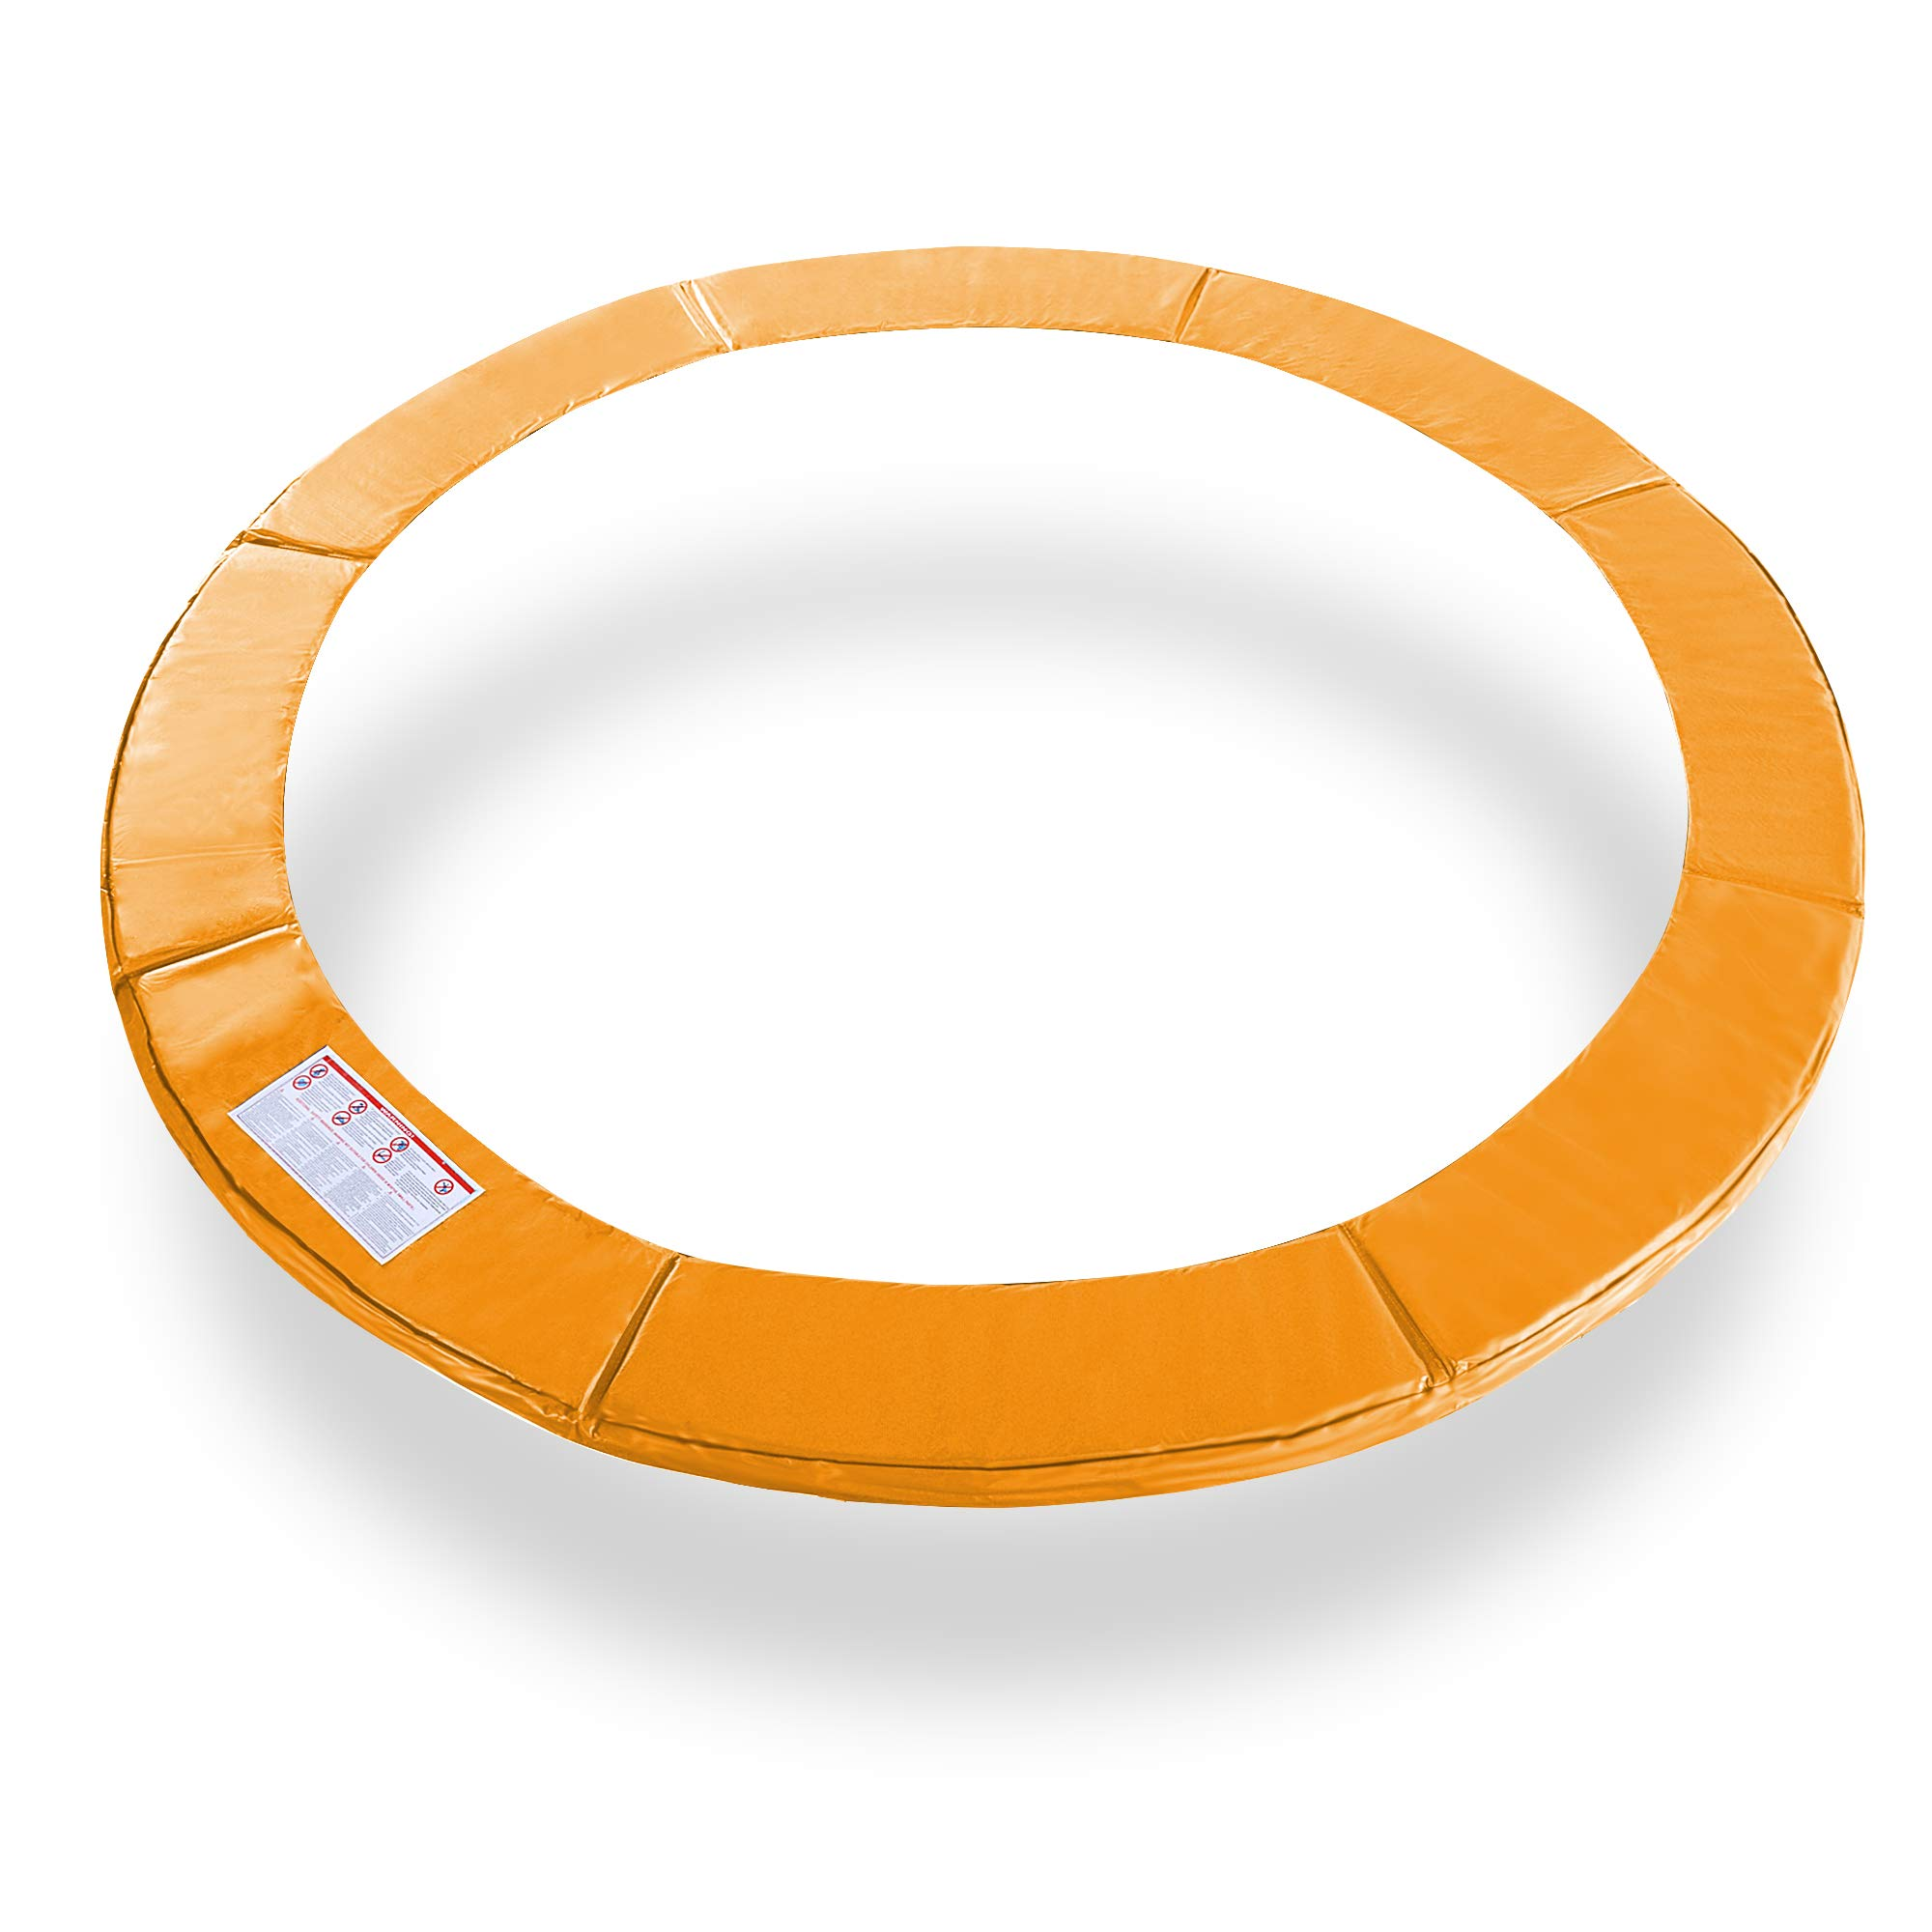 Trampoline   Feet Safety Spring Cover Round Frame Pad Exacme 10 12 14 15 16